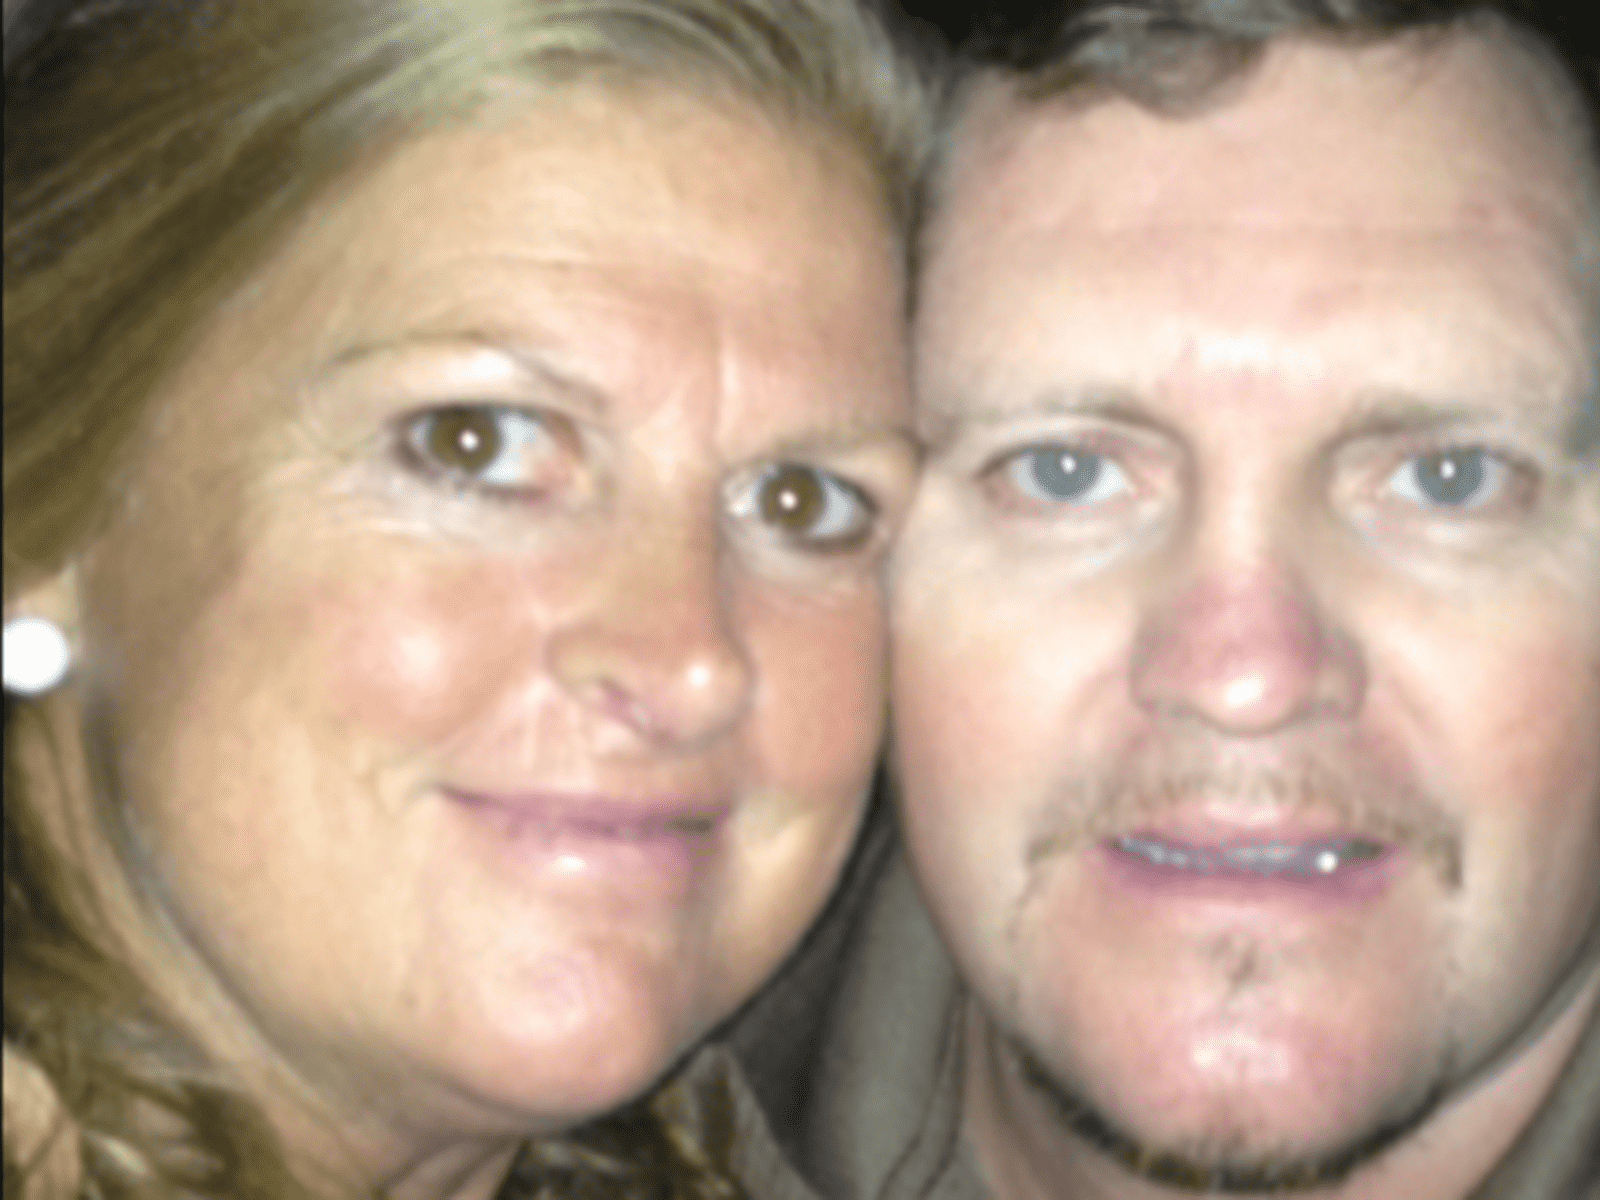 Robert & Helen from Brisbane, Queensland, Australia